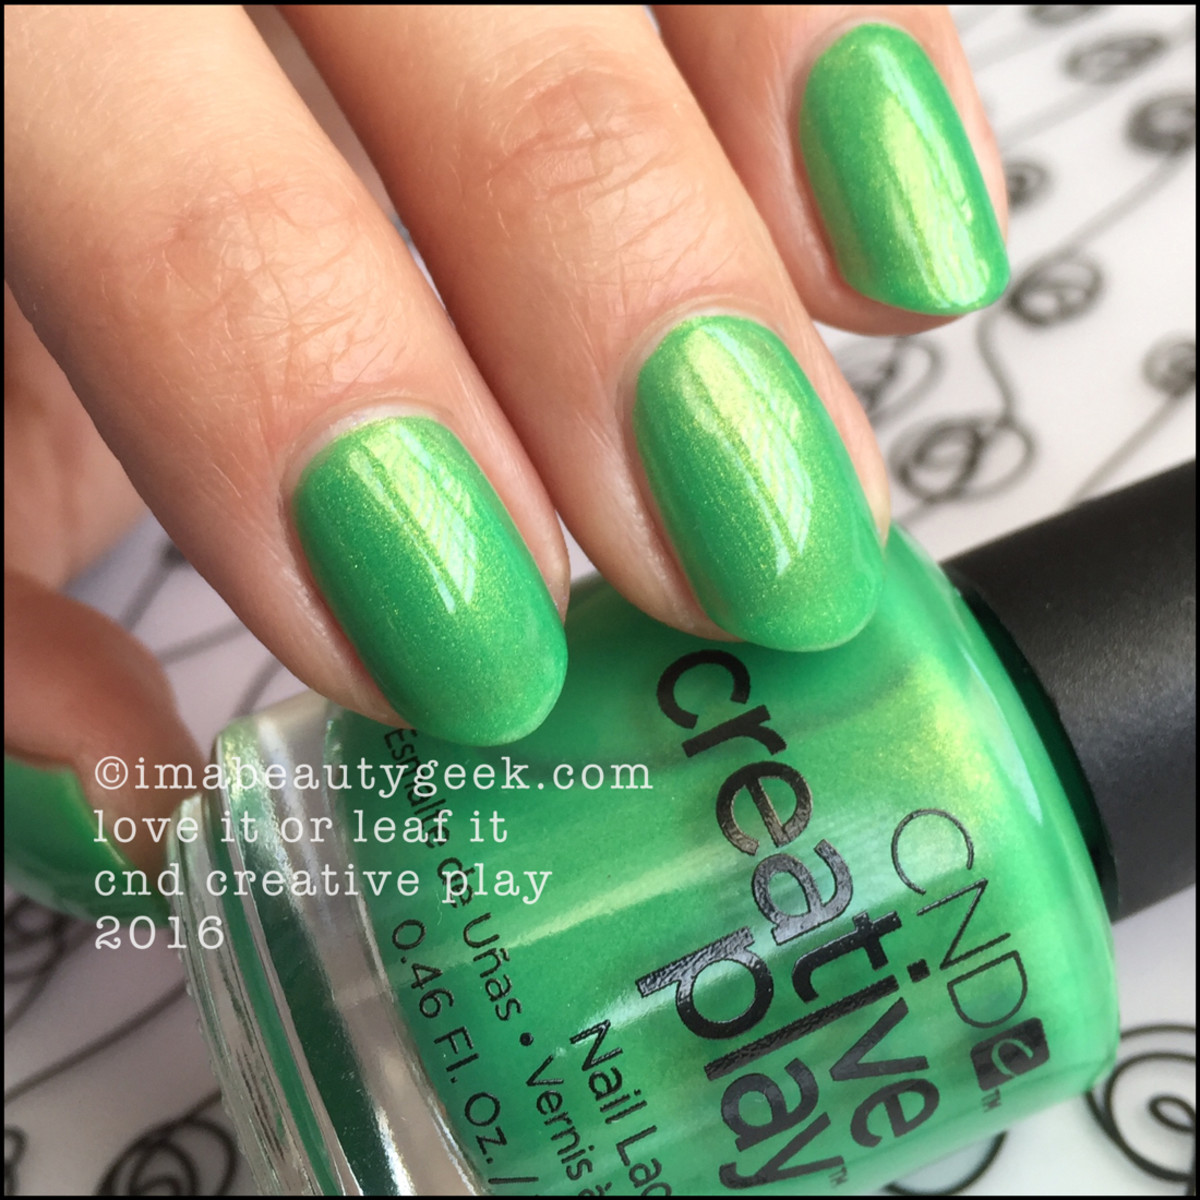 CND Creative Play Love it or Leaf It_CND Creative Play Nail Polish Swatches 2016